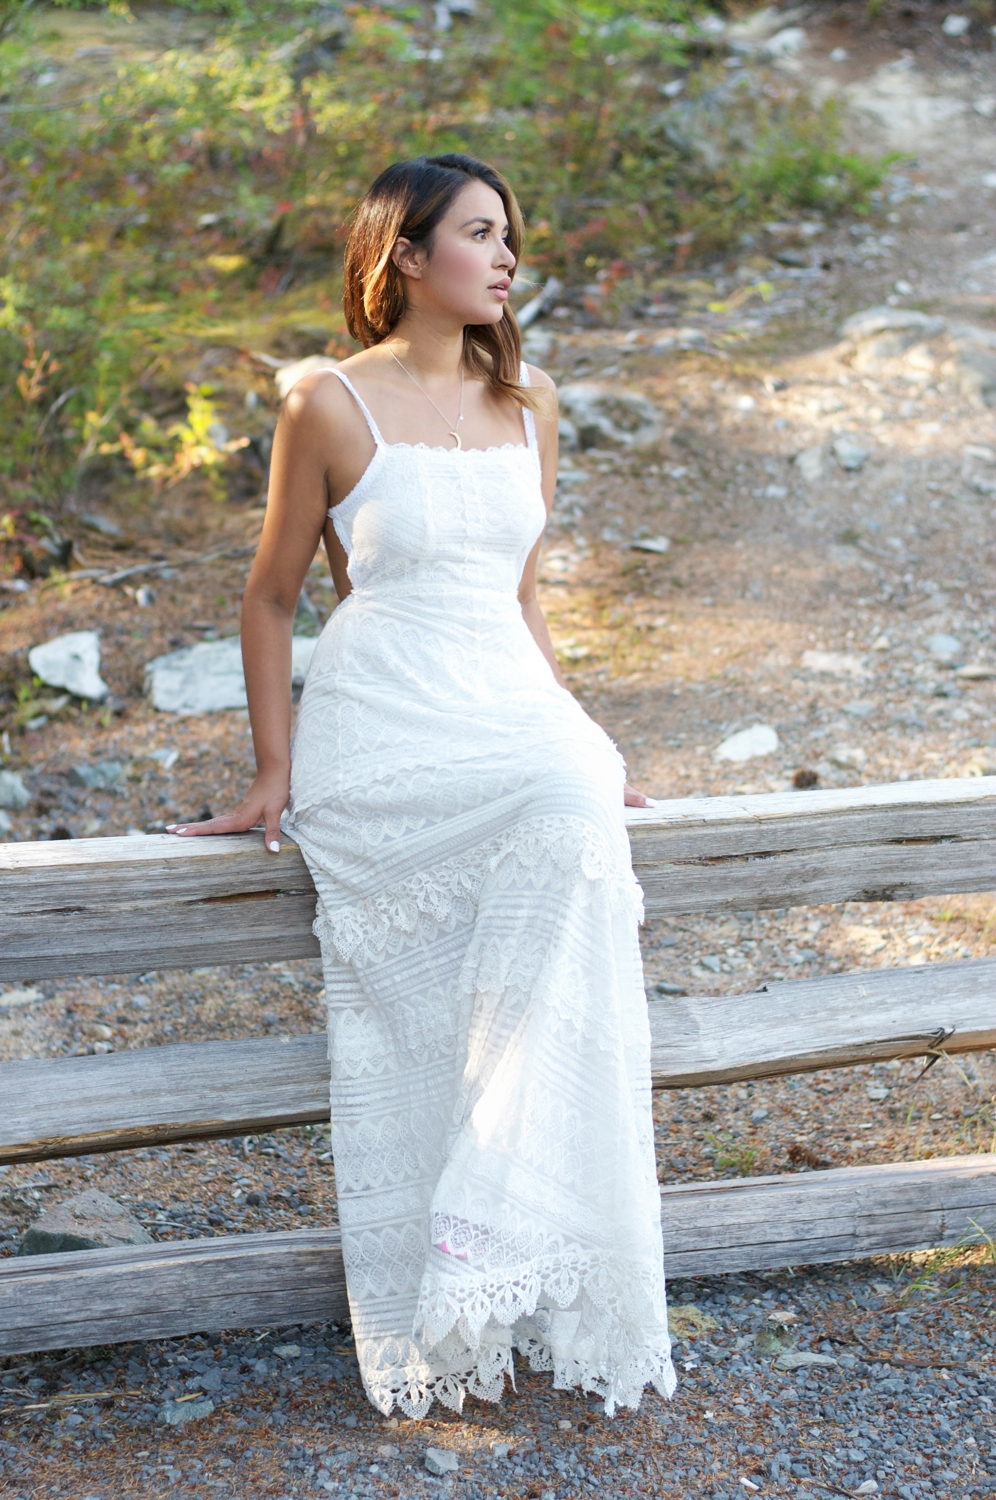 Barefoot Amp Bridal Gumboot Glam A Vancouver Based